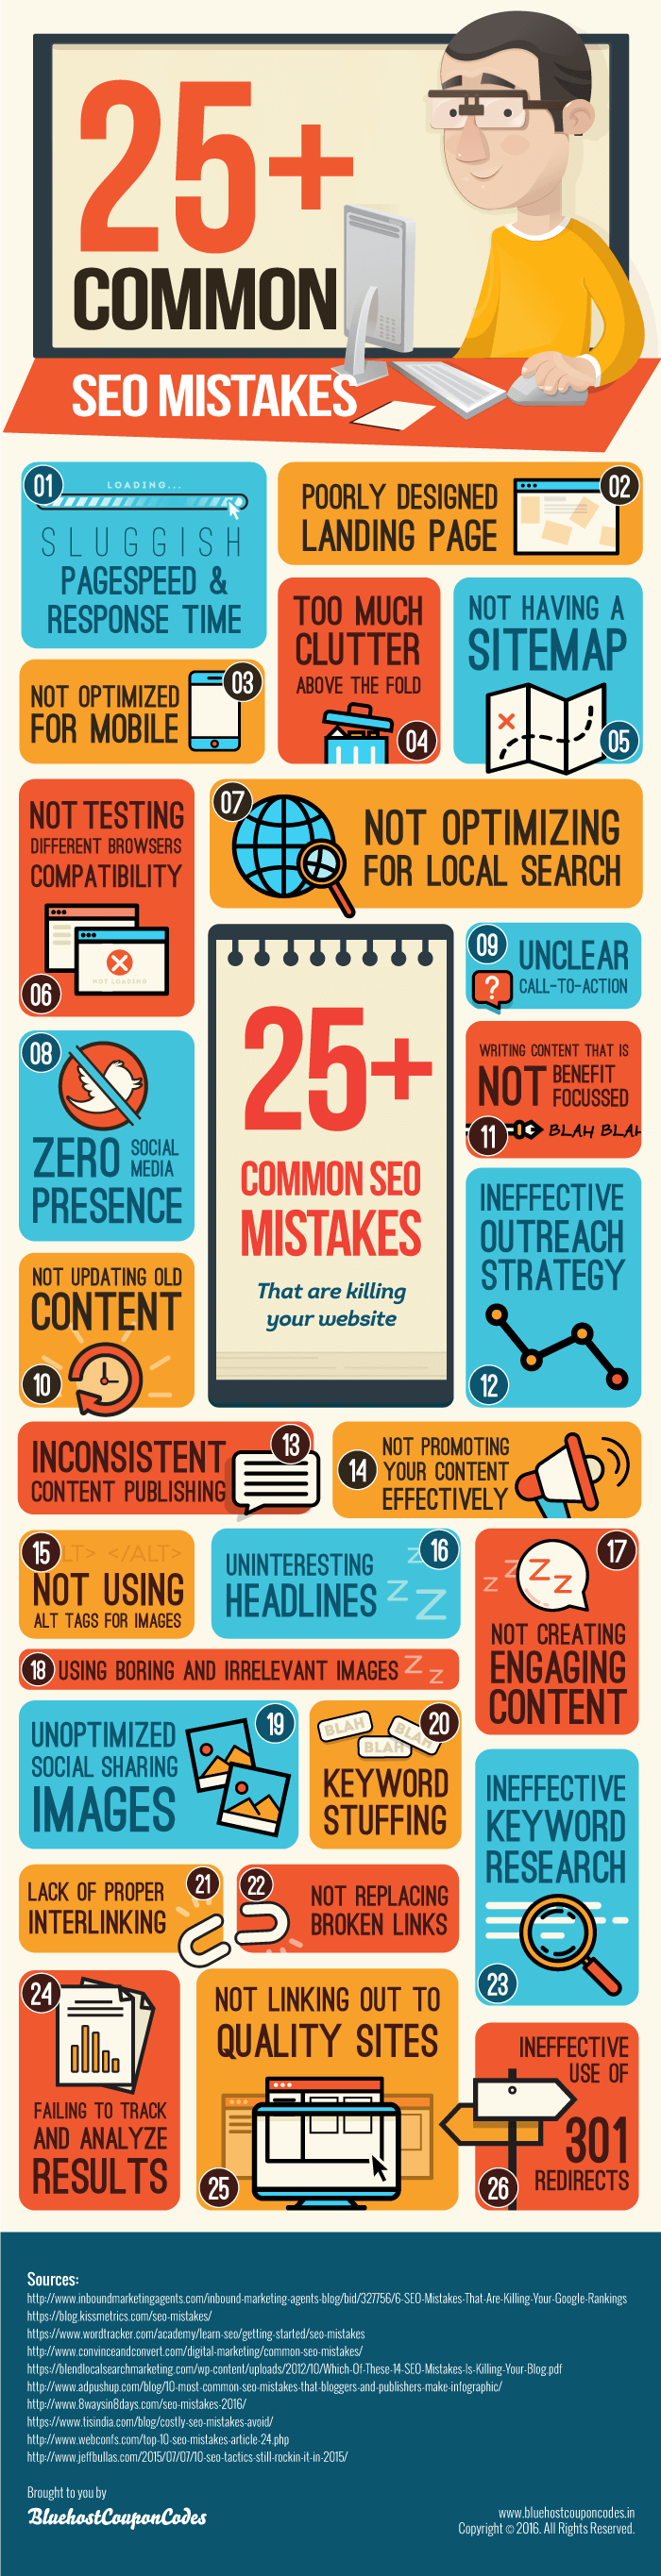 Common-SEO-Mistakes-Infographic